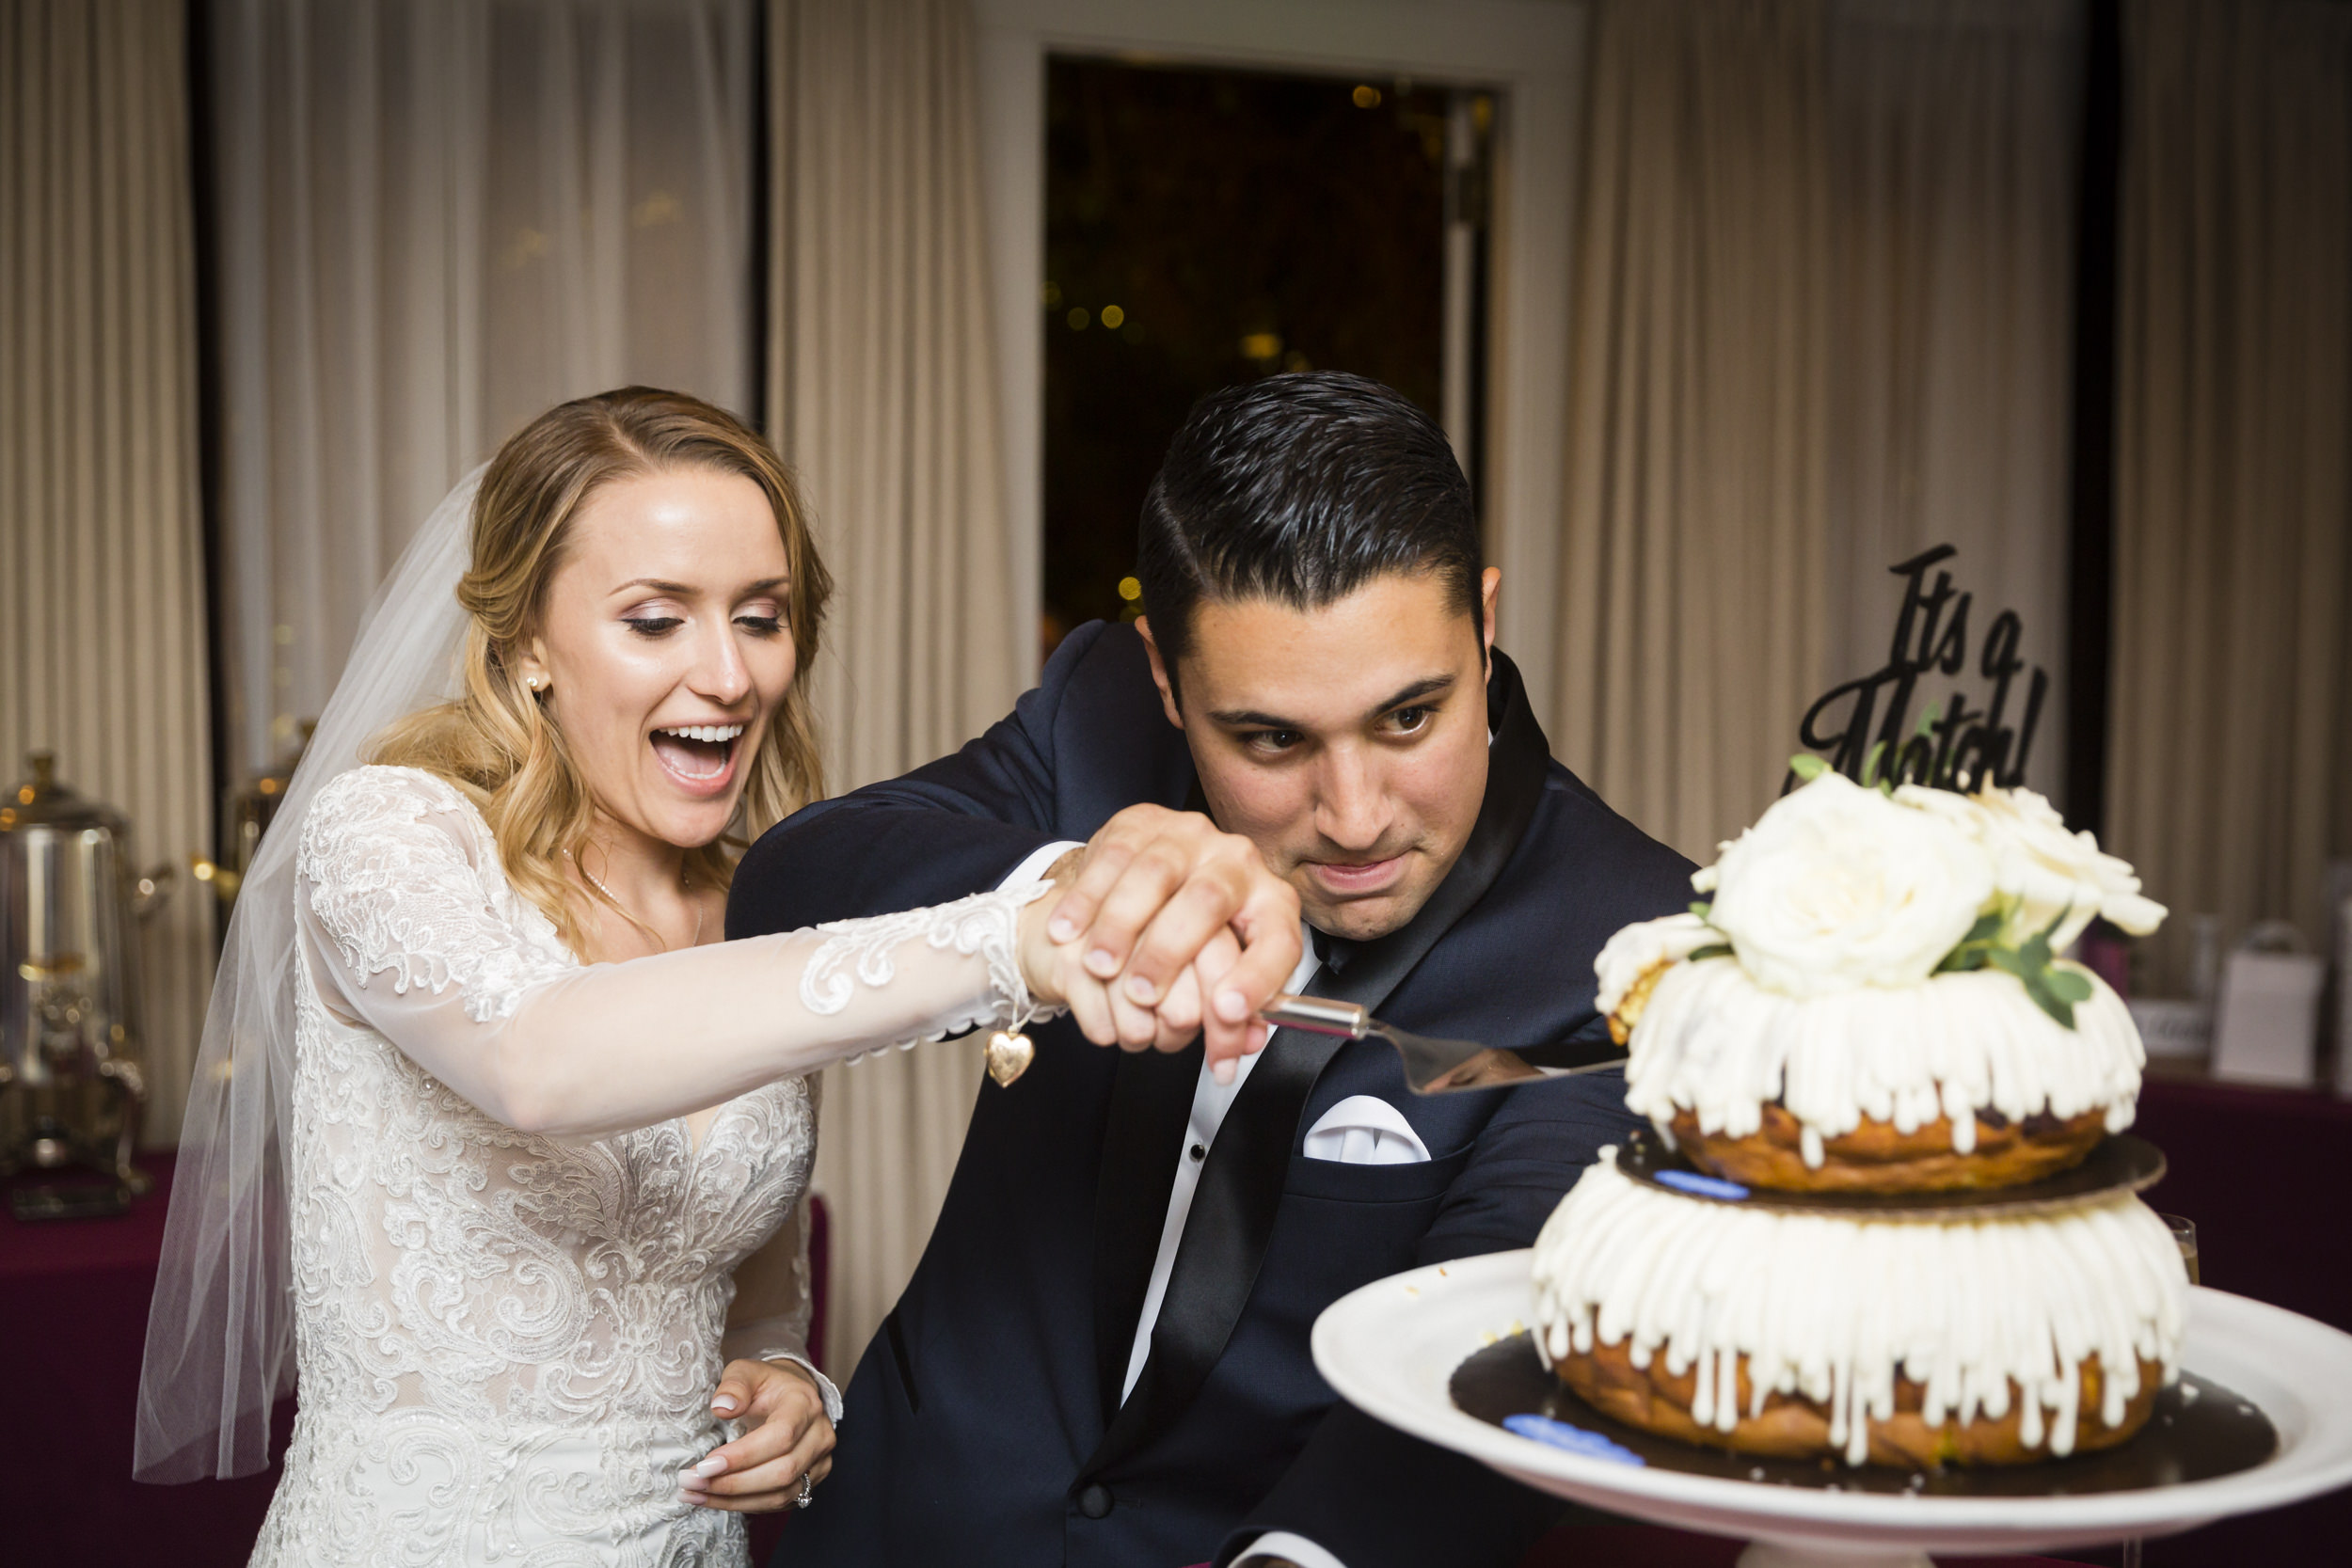 tim-stephanie-wedding-reception-cake-cutting-1.jpg